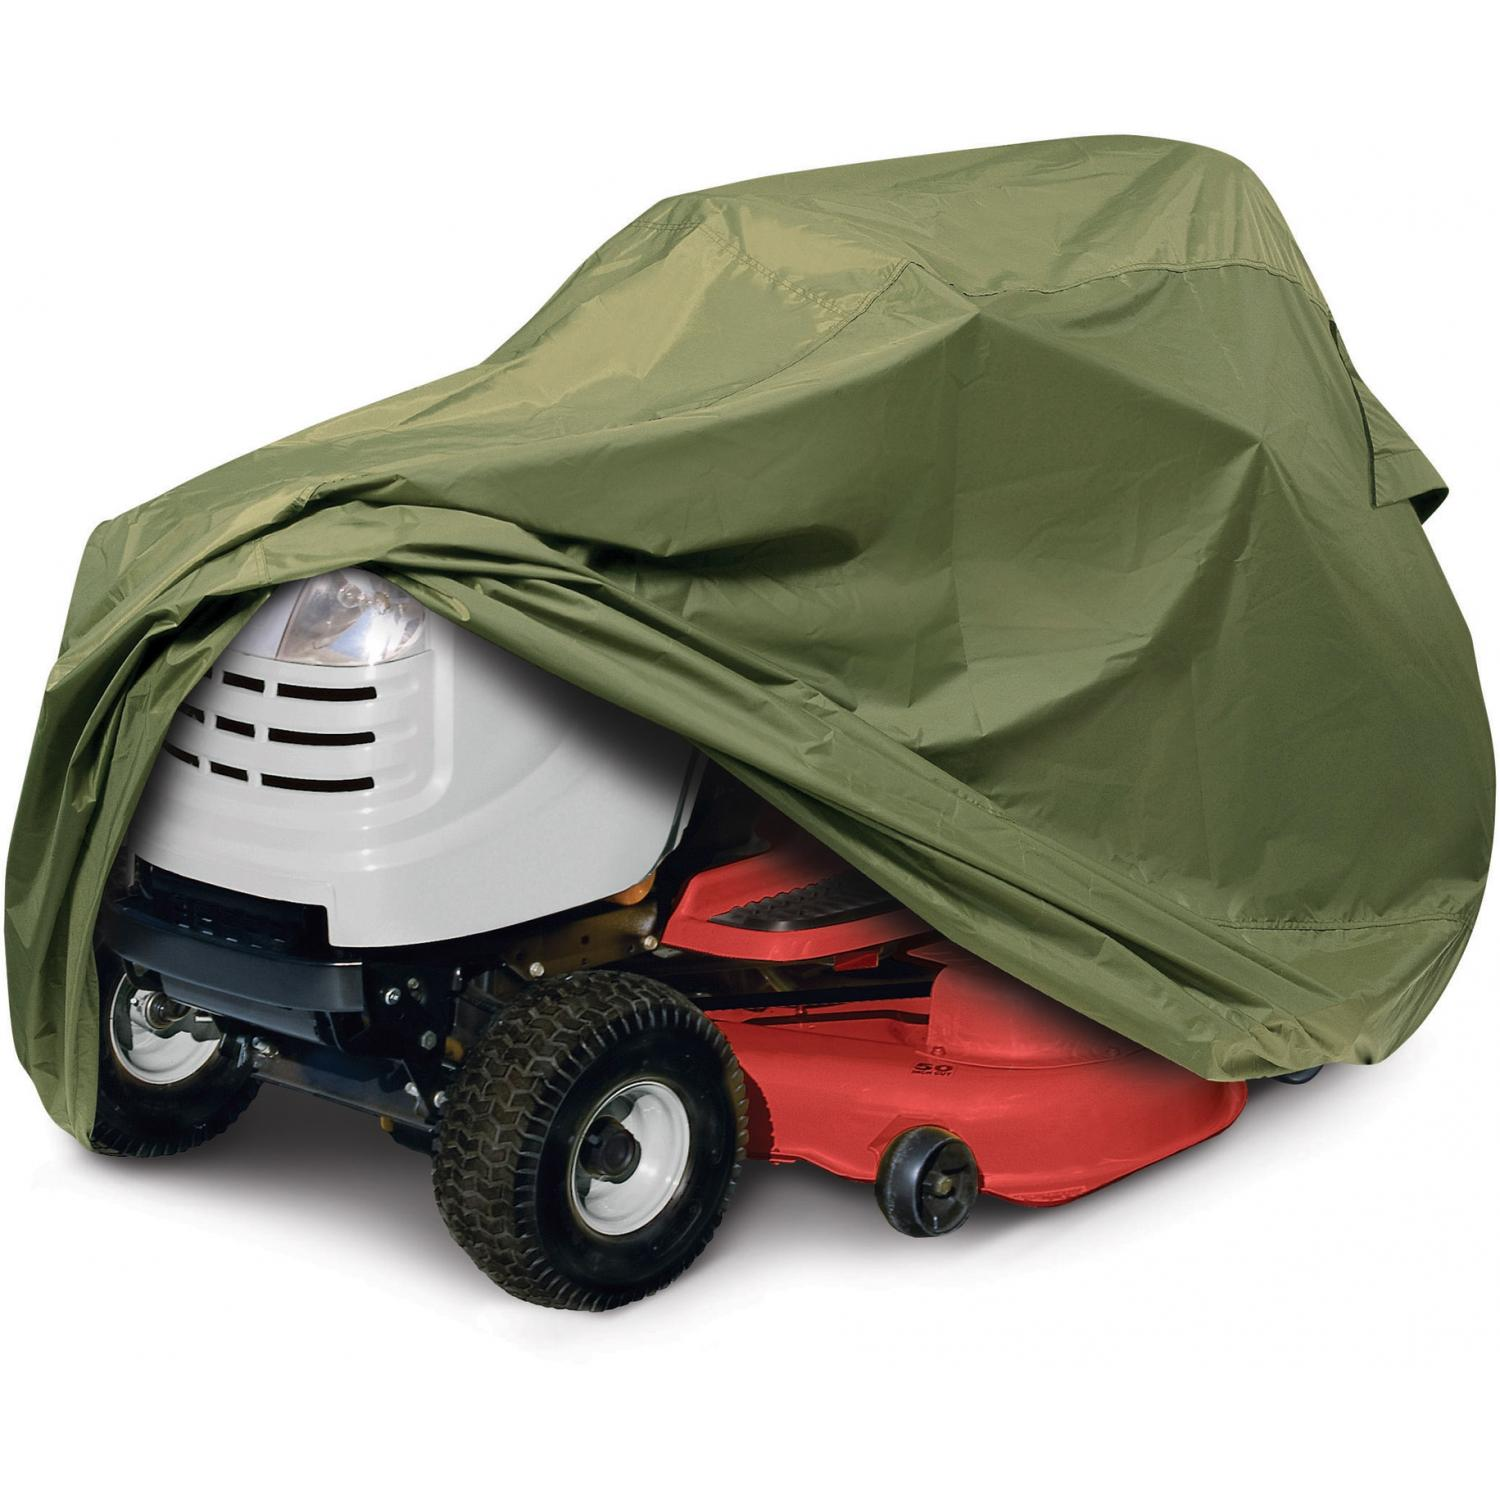 Classic Accessories Tractor Cover - Olive